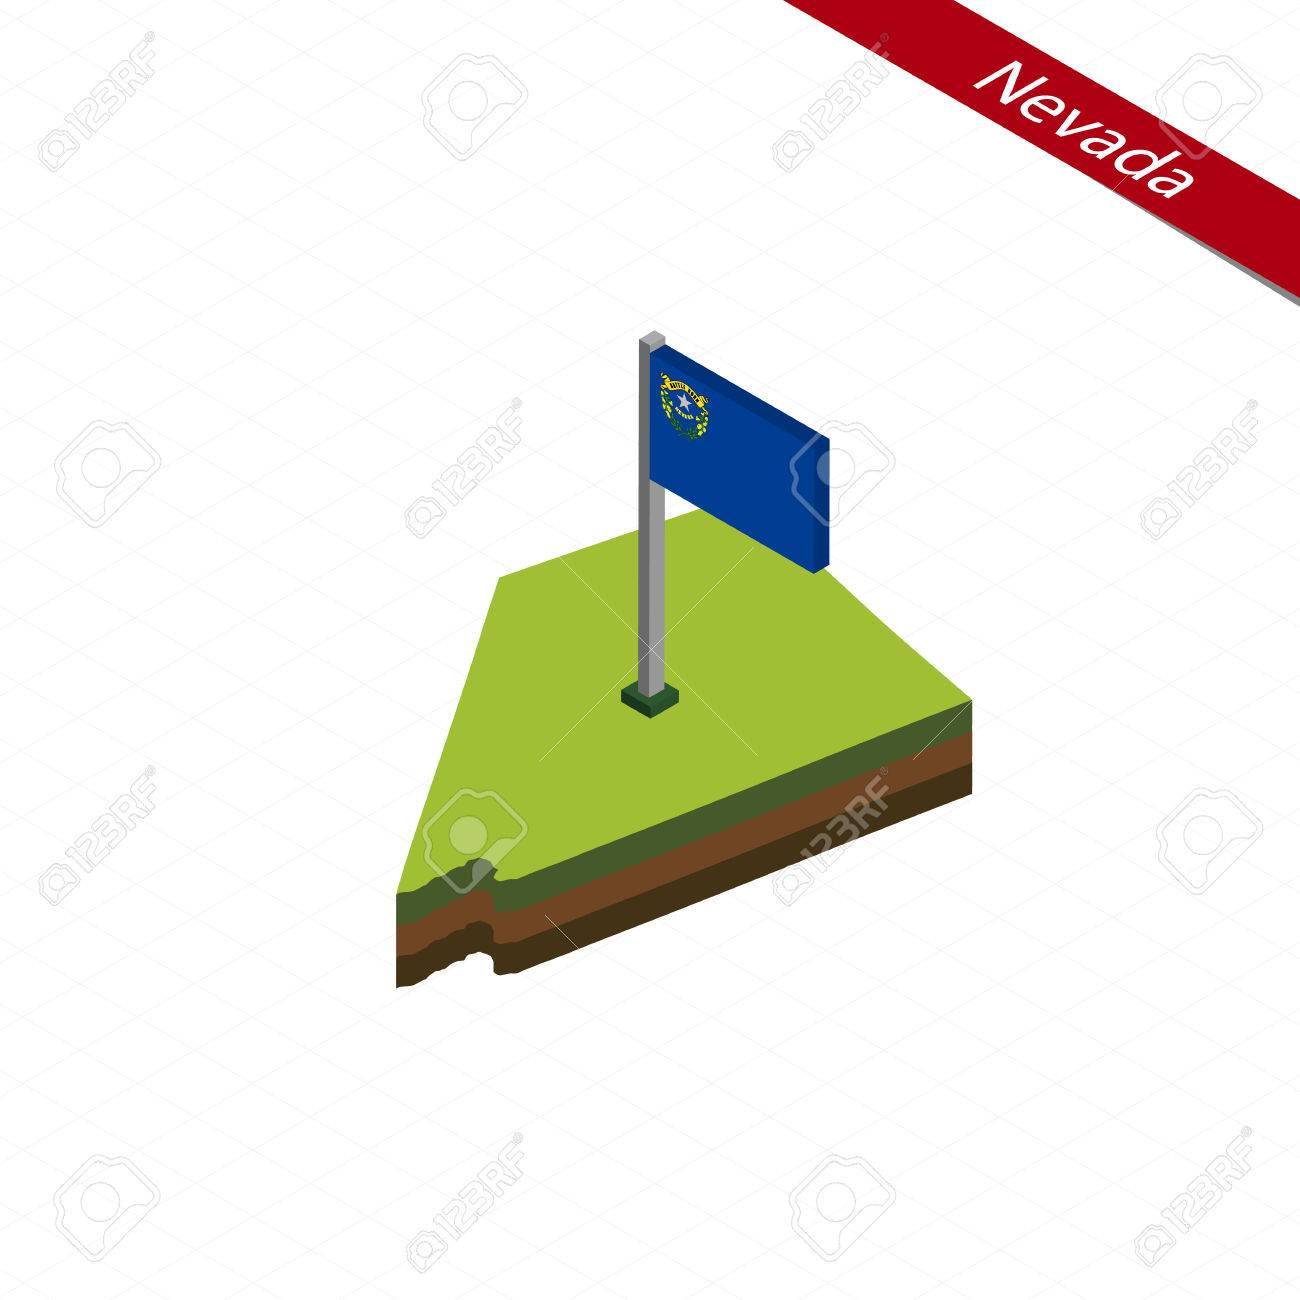 Isometric Map And Flag Of Nevada 3d Isometric Shape Of Nevada Royalty Free Cliparts Vectors And Stock Illustration Image 80396559